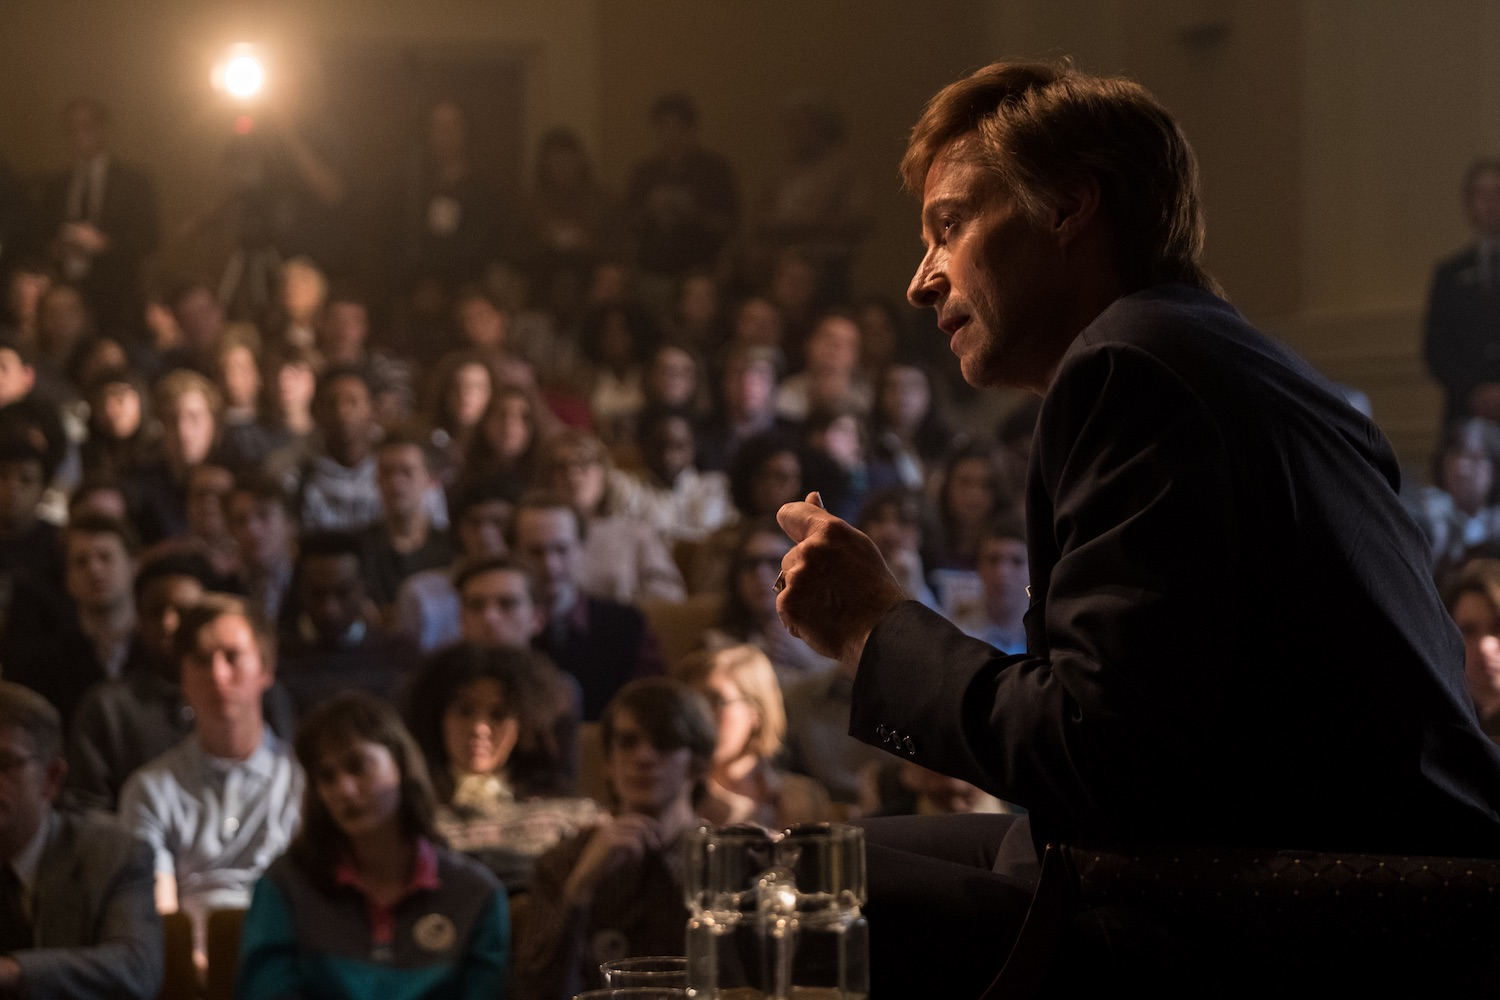 Hugh Jackman plays Senator Gary Hart in the upcoming The Front Runner movie.